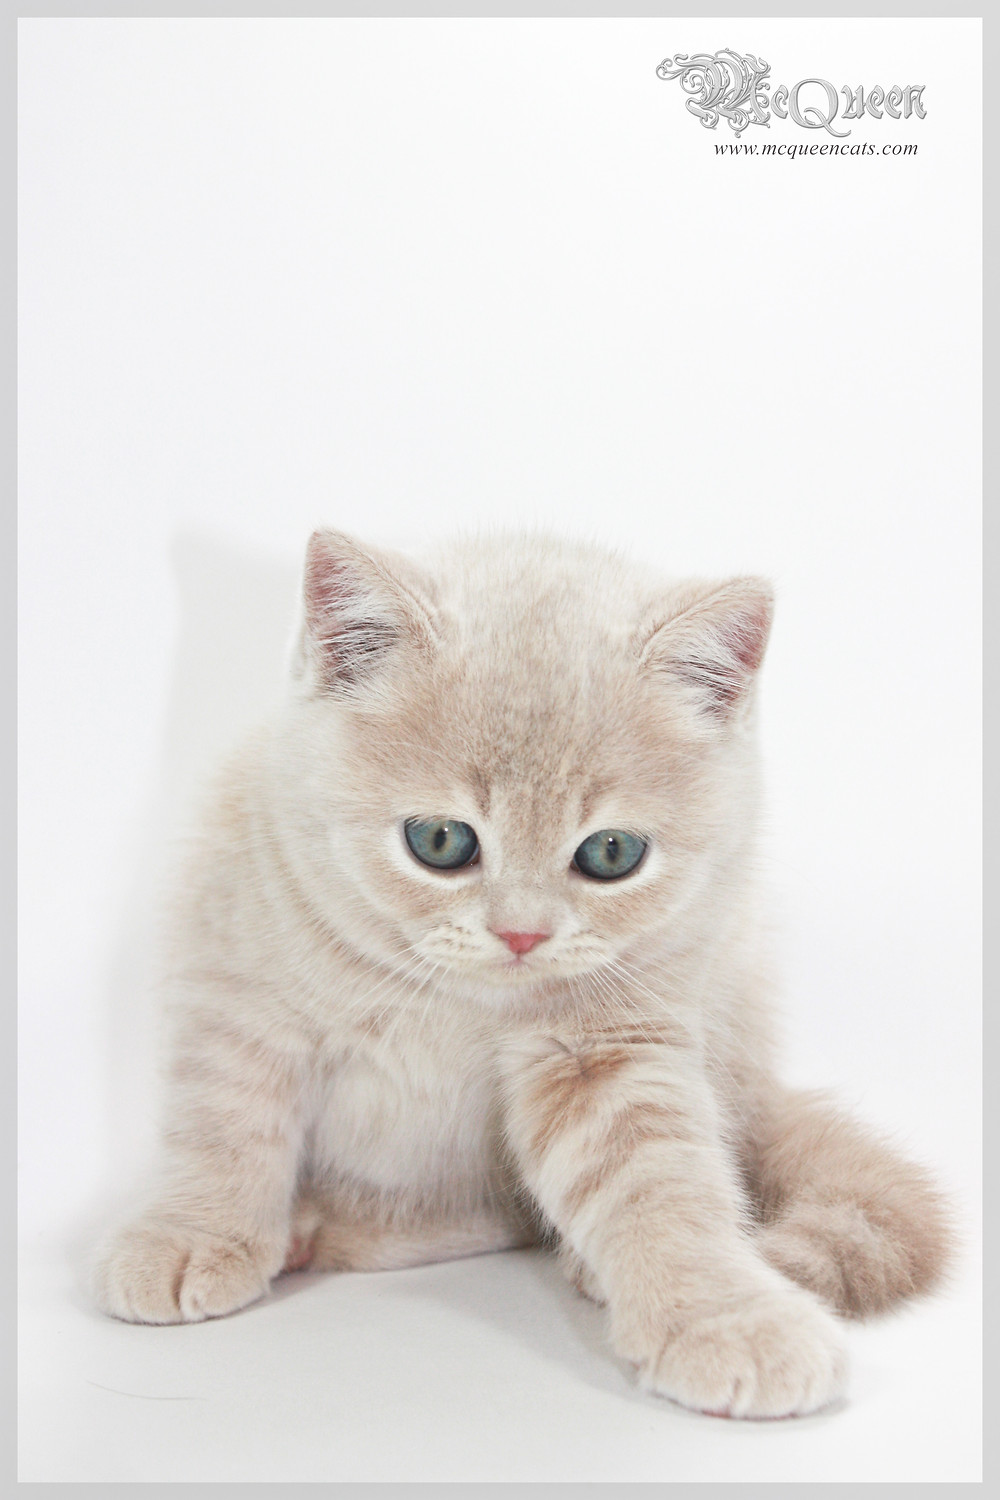 Cream British Shorthair Kitten in Dubai